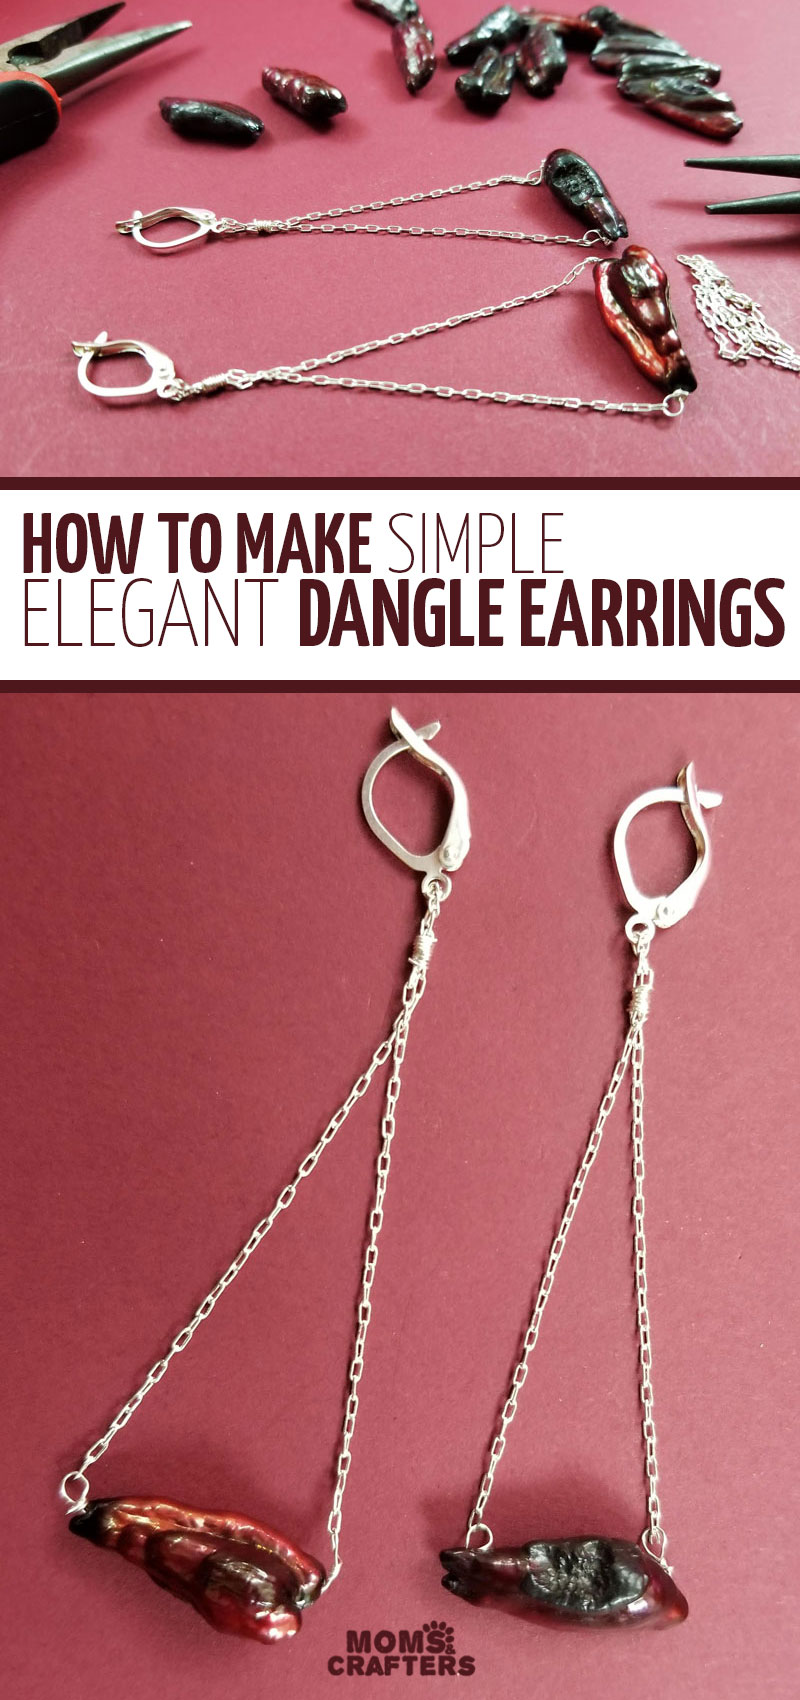 Click for an awesome DIY beaded earrings tutorial for any purpose! These trapeze dangle earrings use beads and wire, and are easy to make. Learn how to make DIY earrings that are simple and minimalist for teens